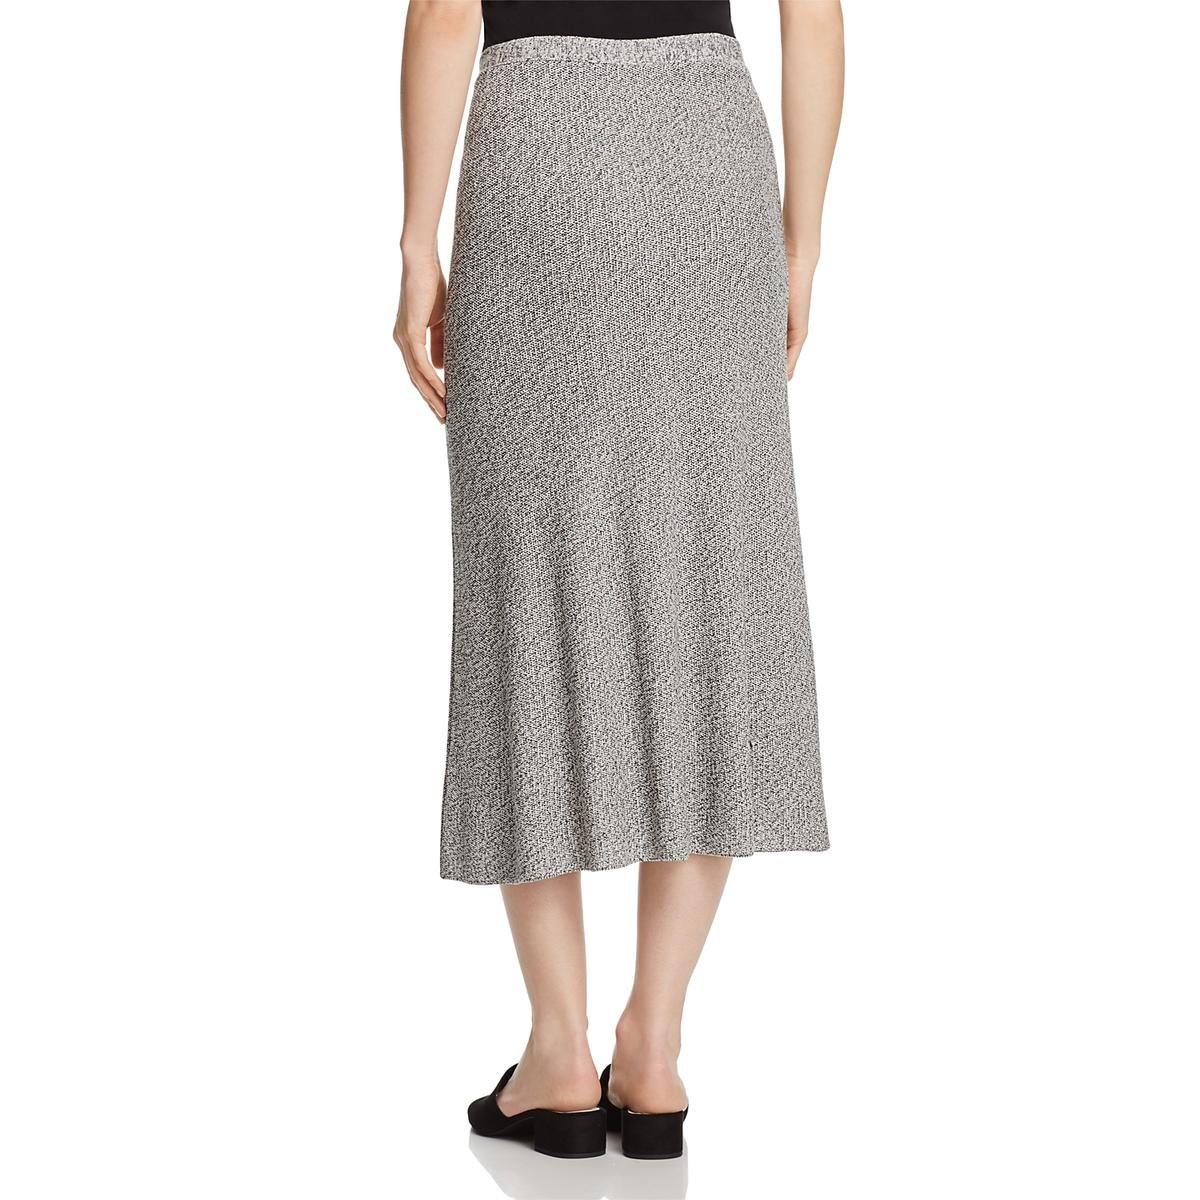 Eileen Fisher Womens Tencel Flare Flare Skirt B/W XL by Eileen Fisher (Image #2)